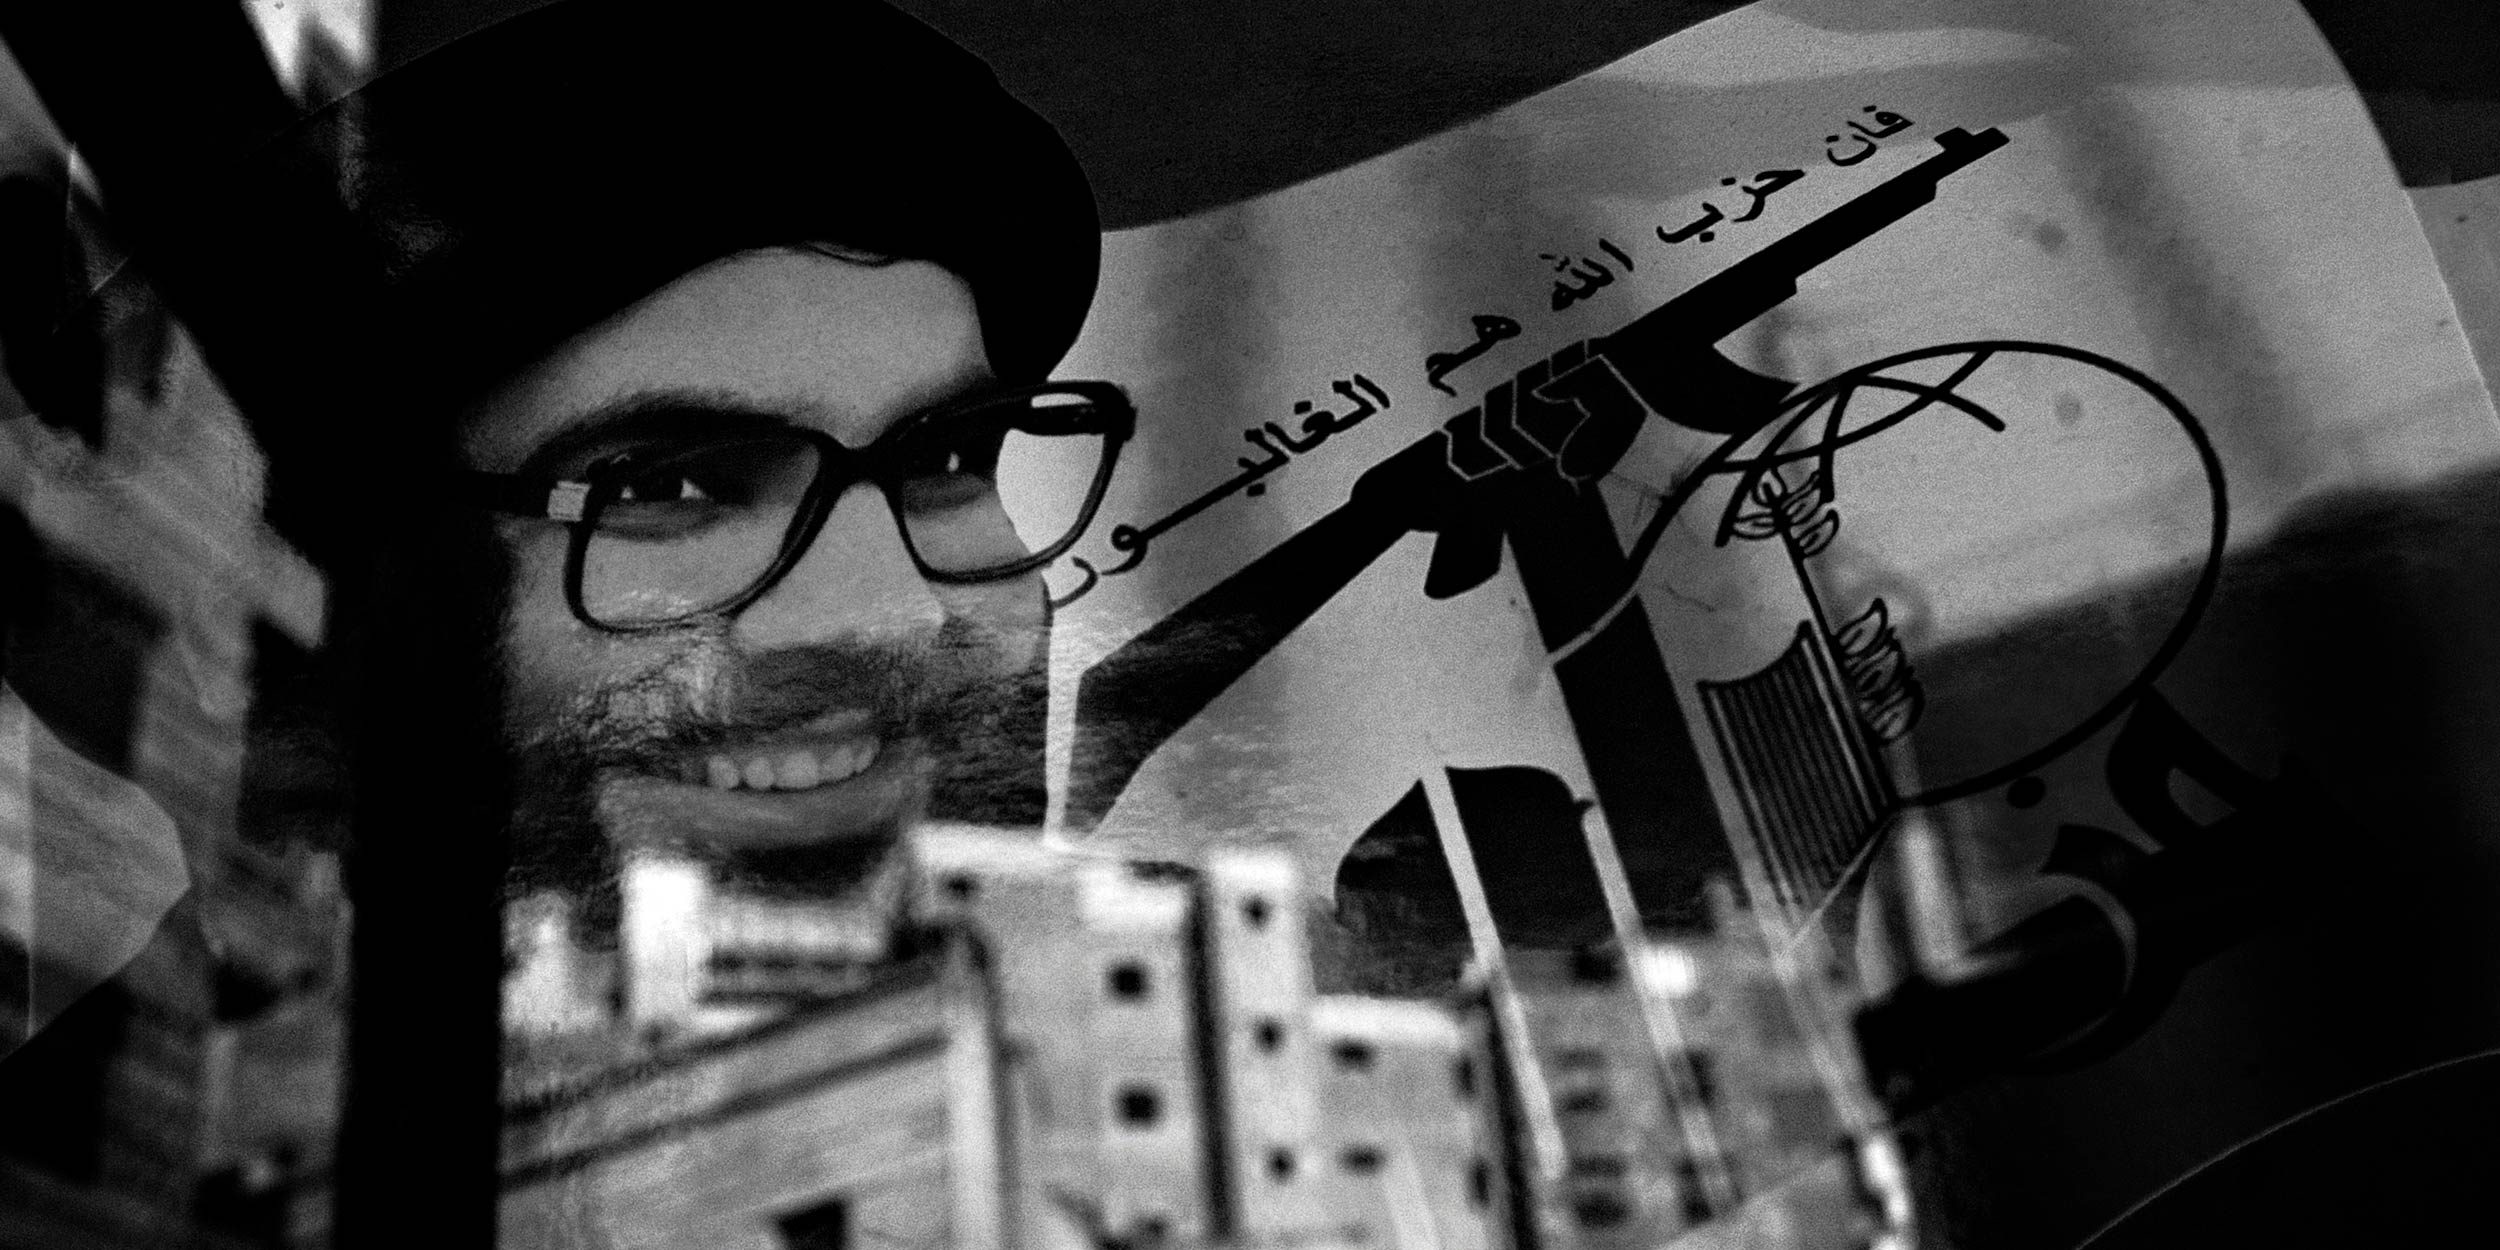 A poster of Hassan Nasrallah in Beirut, Lebanon on 8/23/2006. © Umut Rosa / Shutterstock